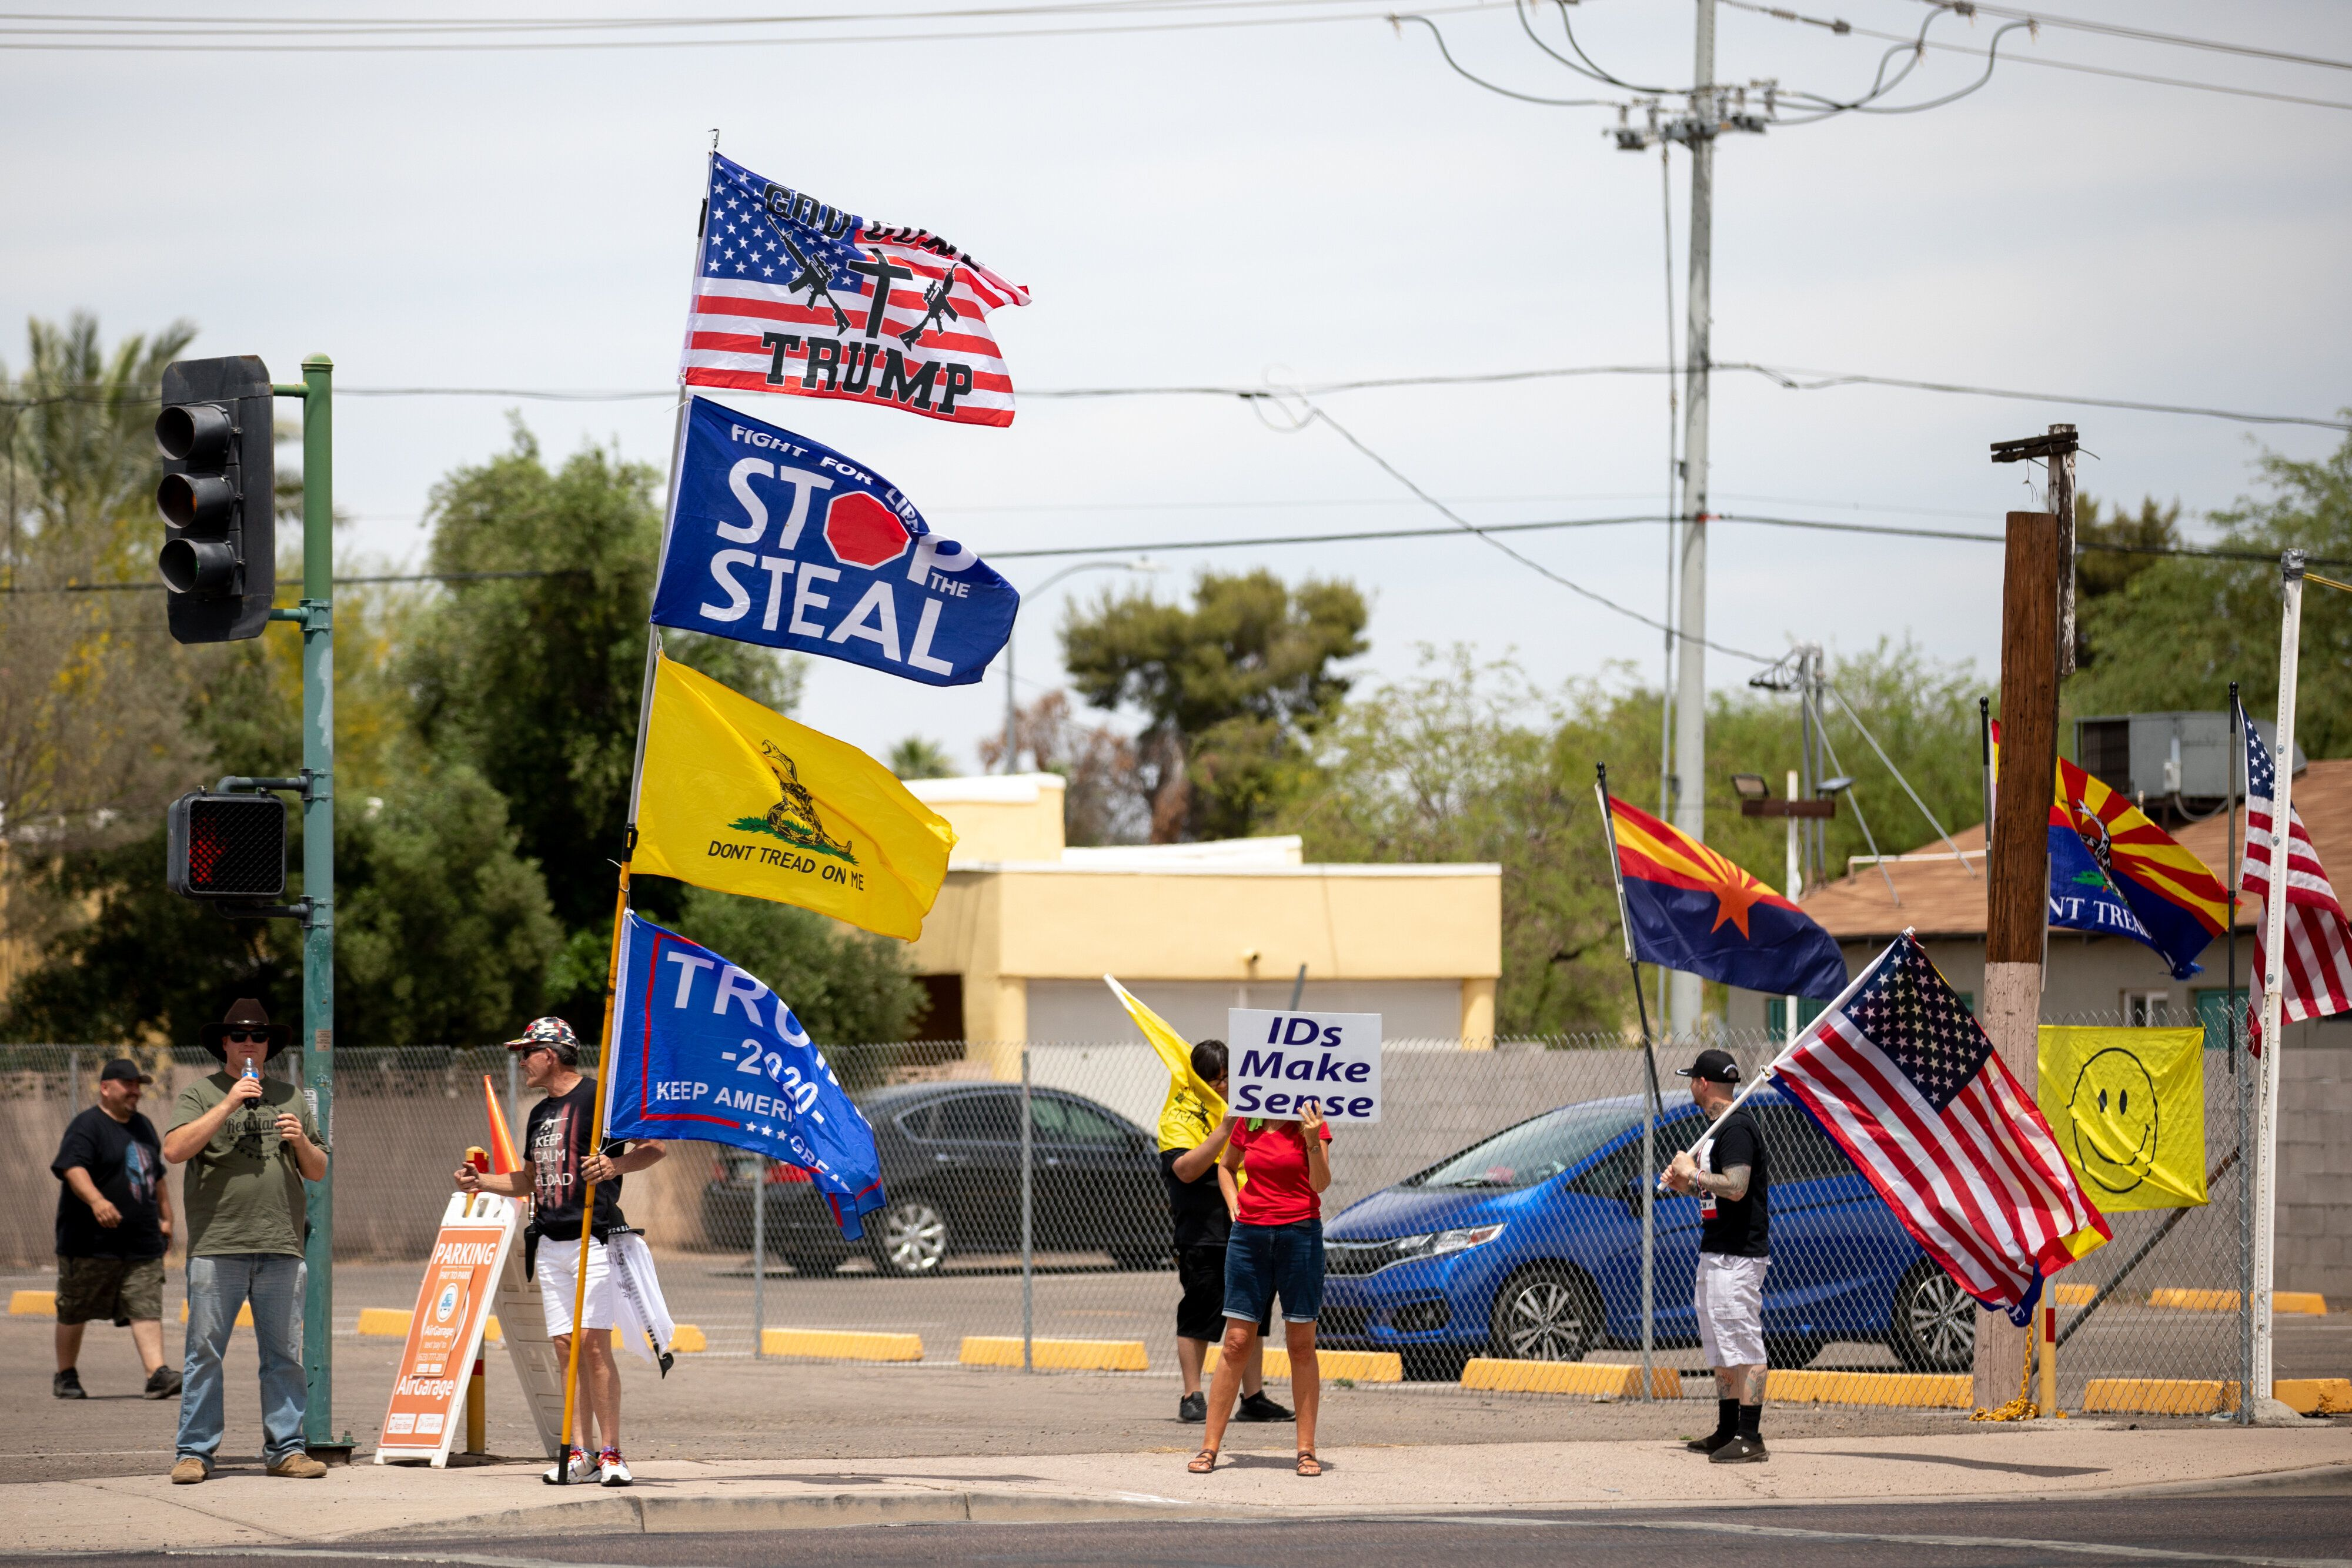 Protestors in support of former President Donald Trump gather outside Veterans Memorial Coliseum in Phoenix, Arizona, on May